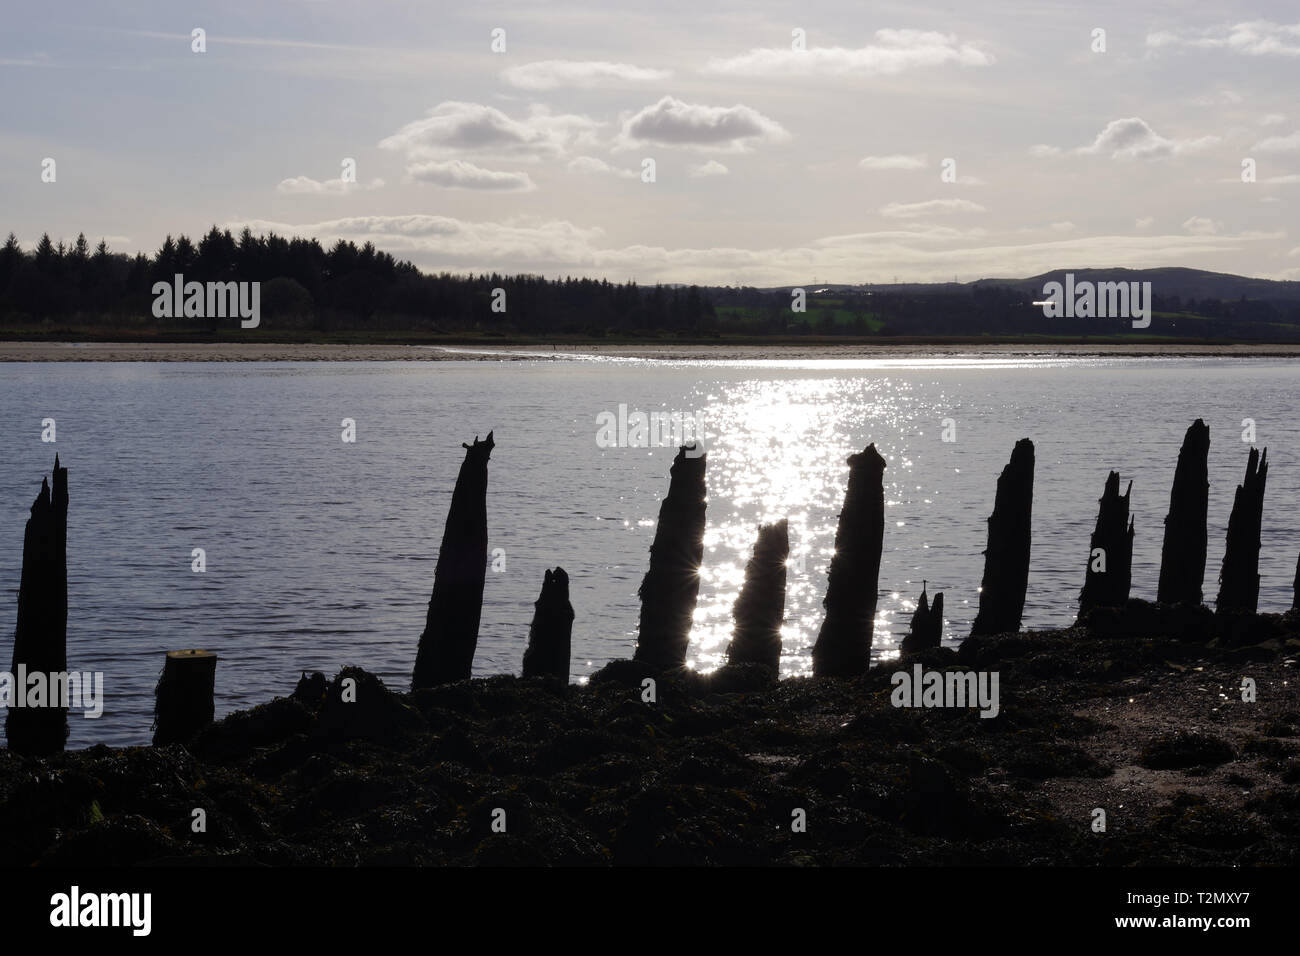 On Bowling harbour Beach, sun shining on the river Clyde, rotting timbers sticking up from the water. - Stock Image